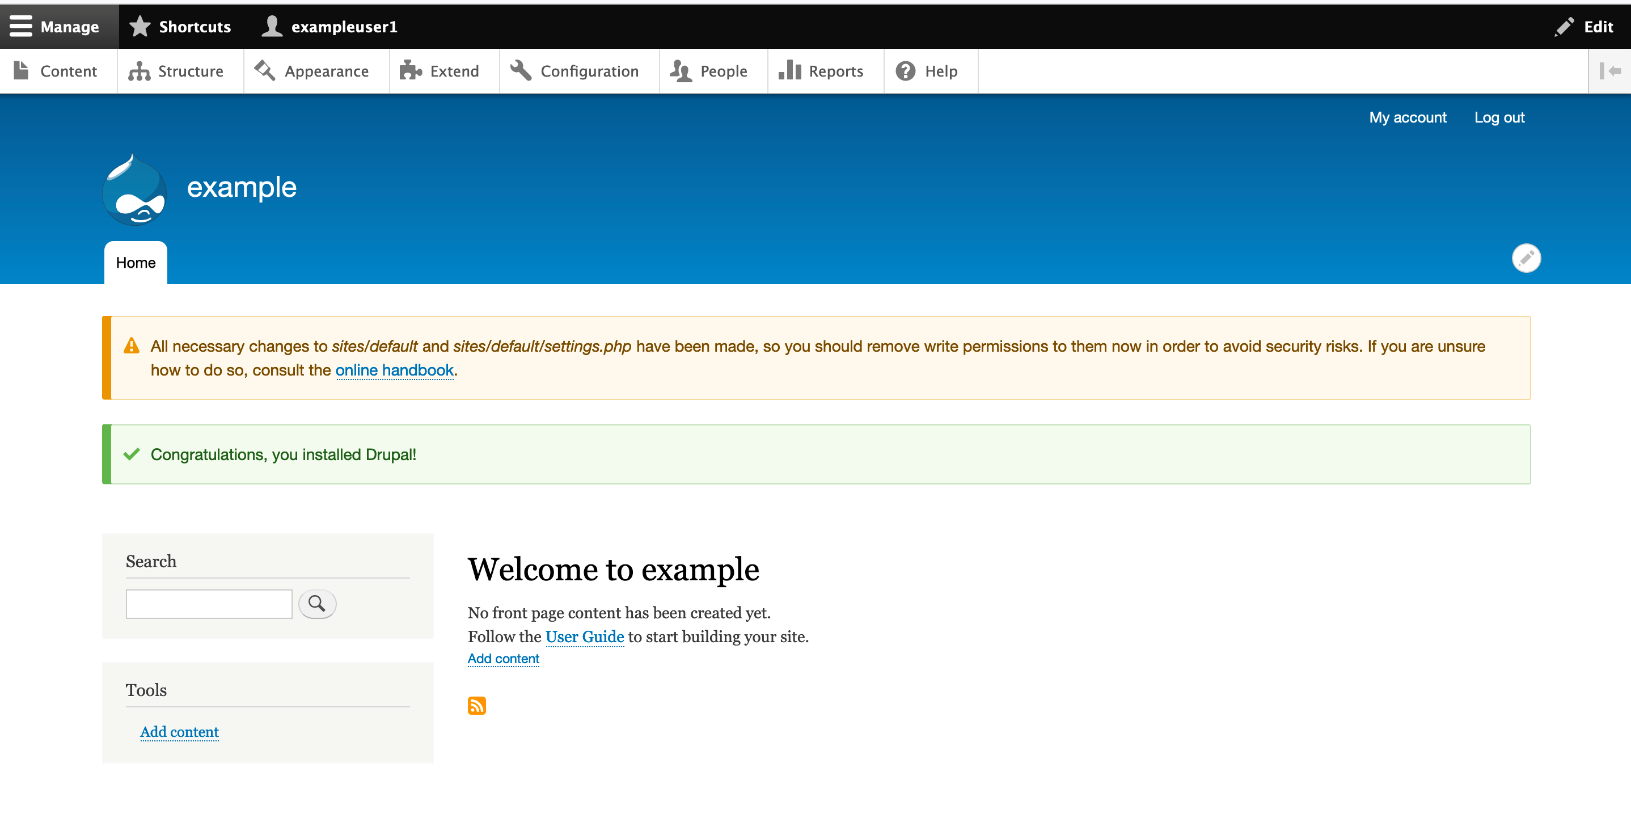 Open up your browser and point to the new site. If the documented process was followed, you see the following page